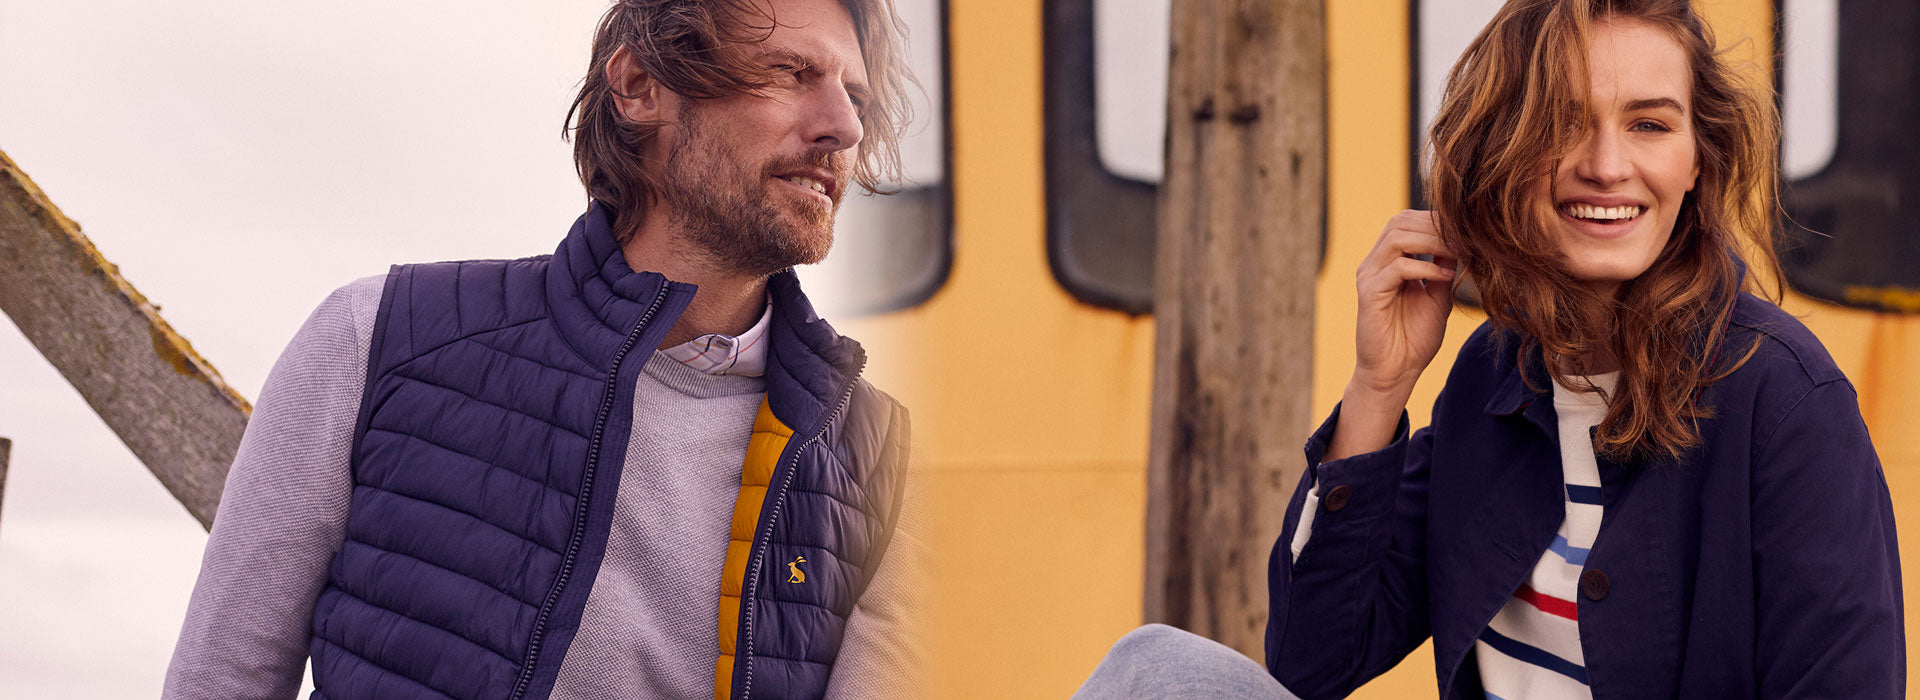 Joules women and men